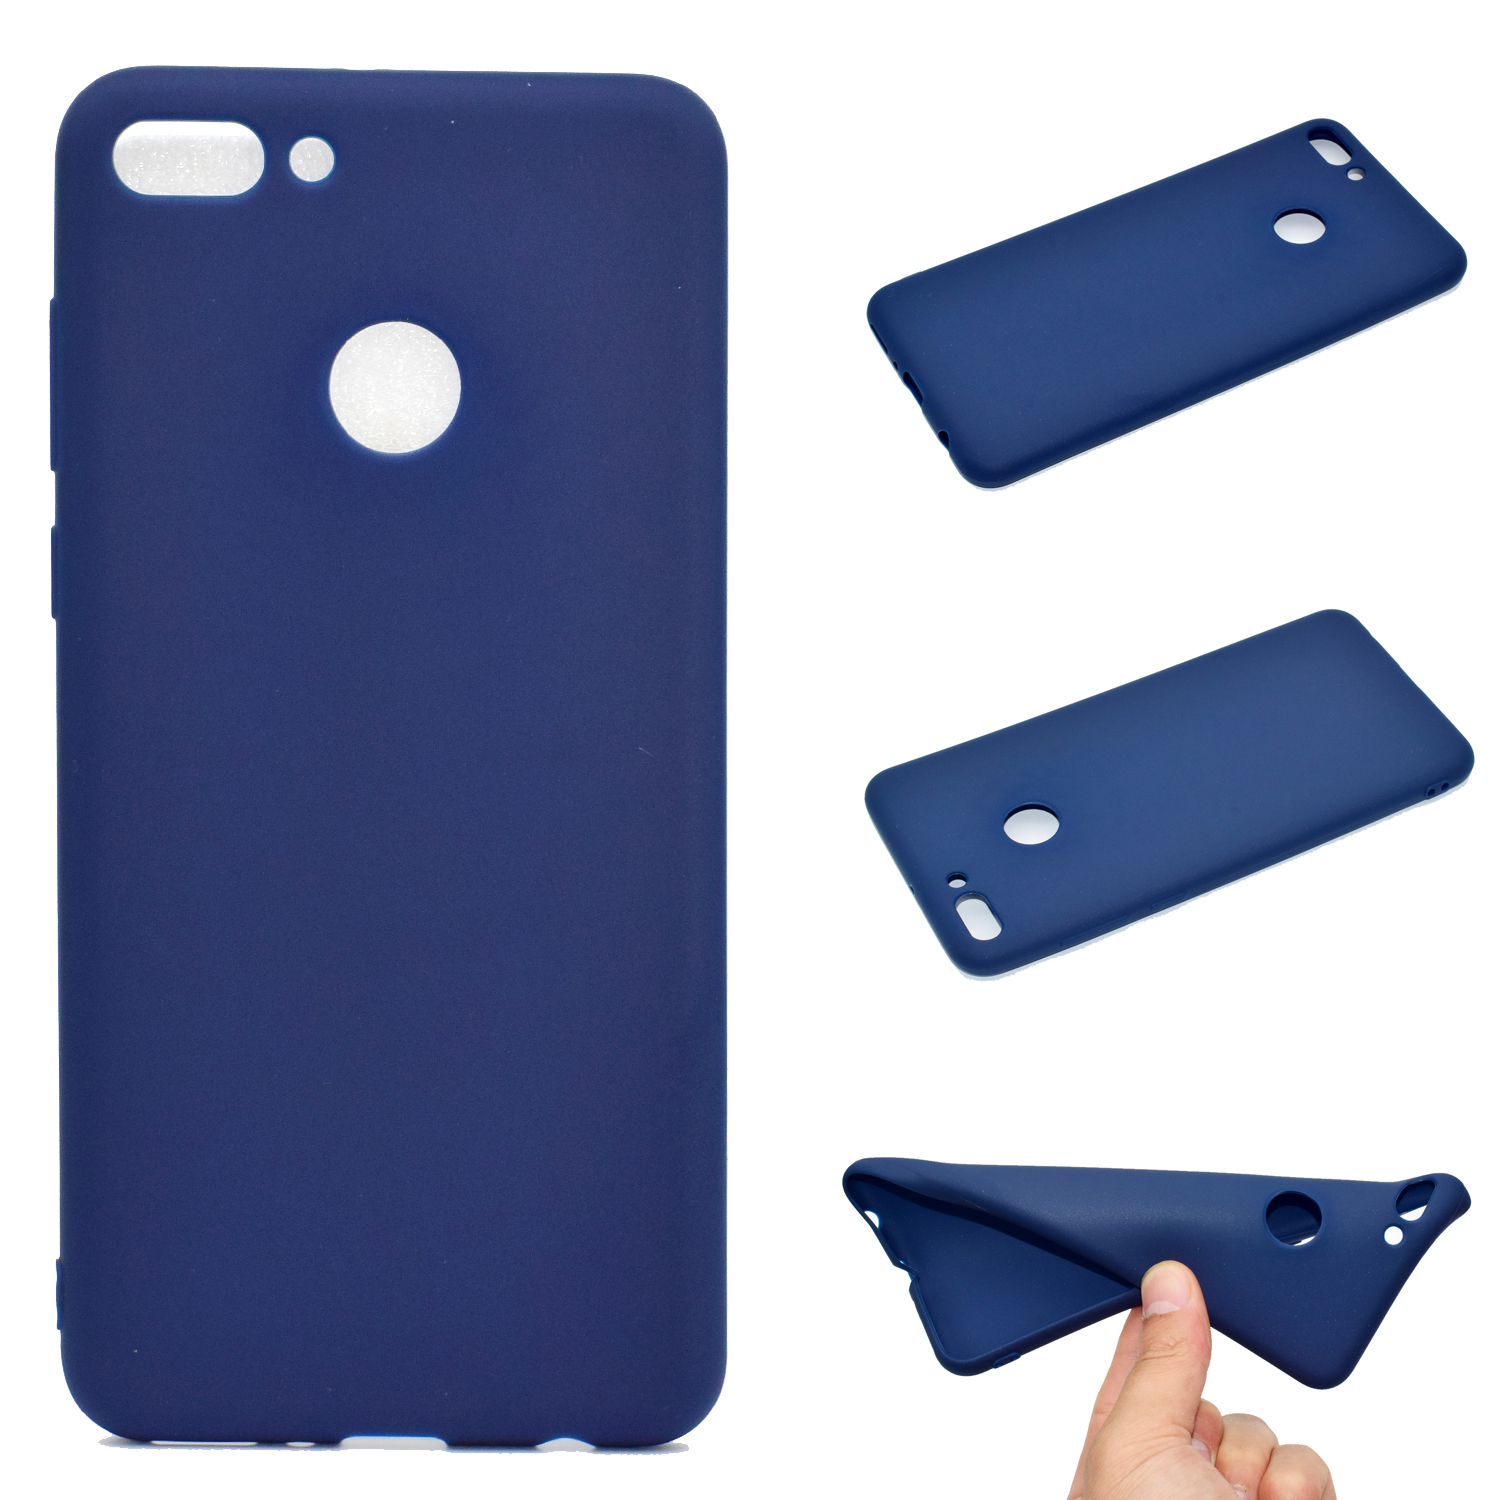 for HUAWEI Y9 2018 Lovely Candy Color Matte TPU Anti-scratch Non-slip Protective Cover Back Case Navy